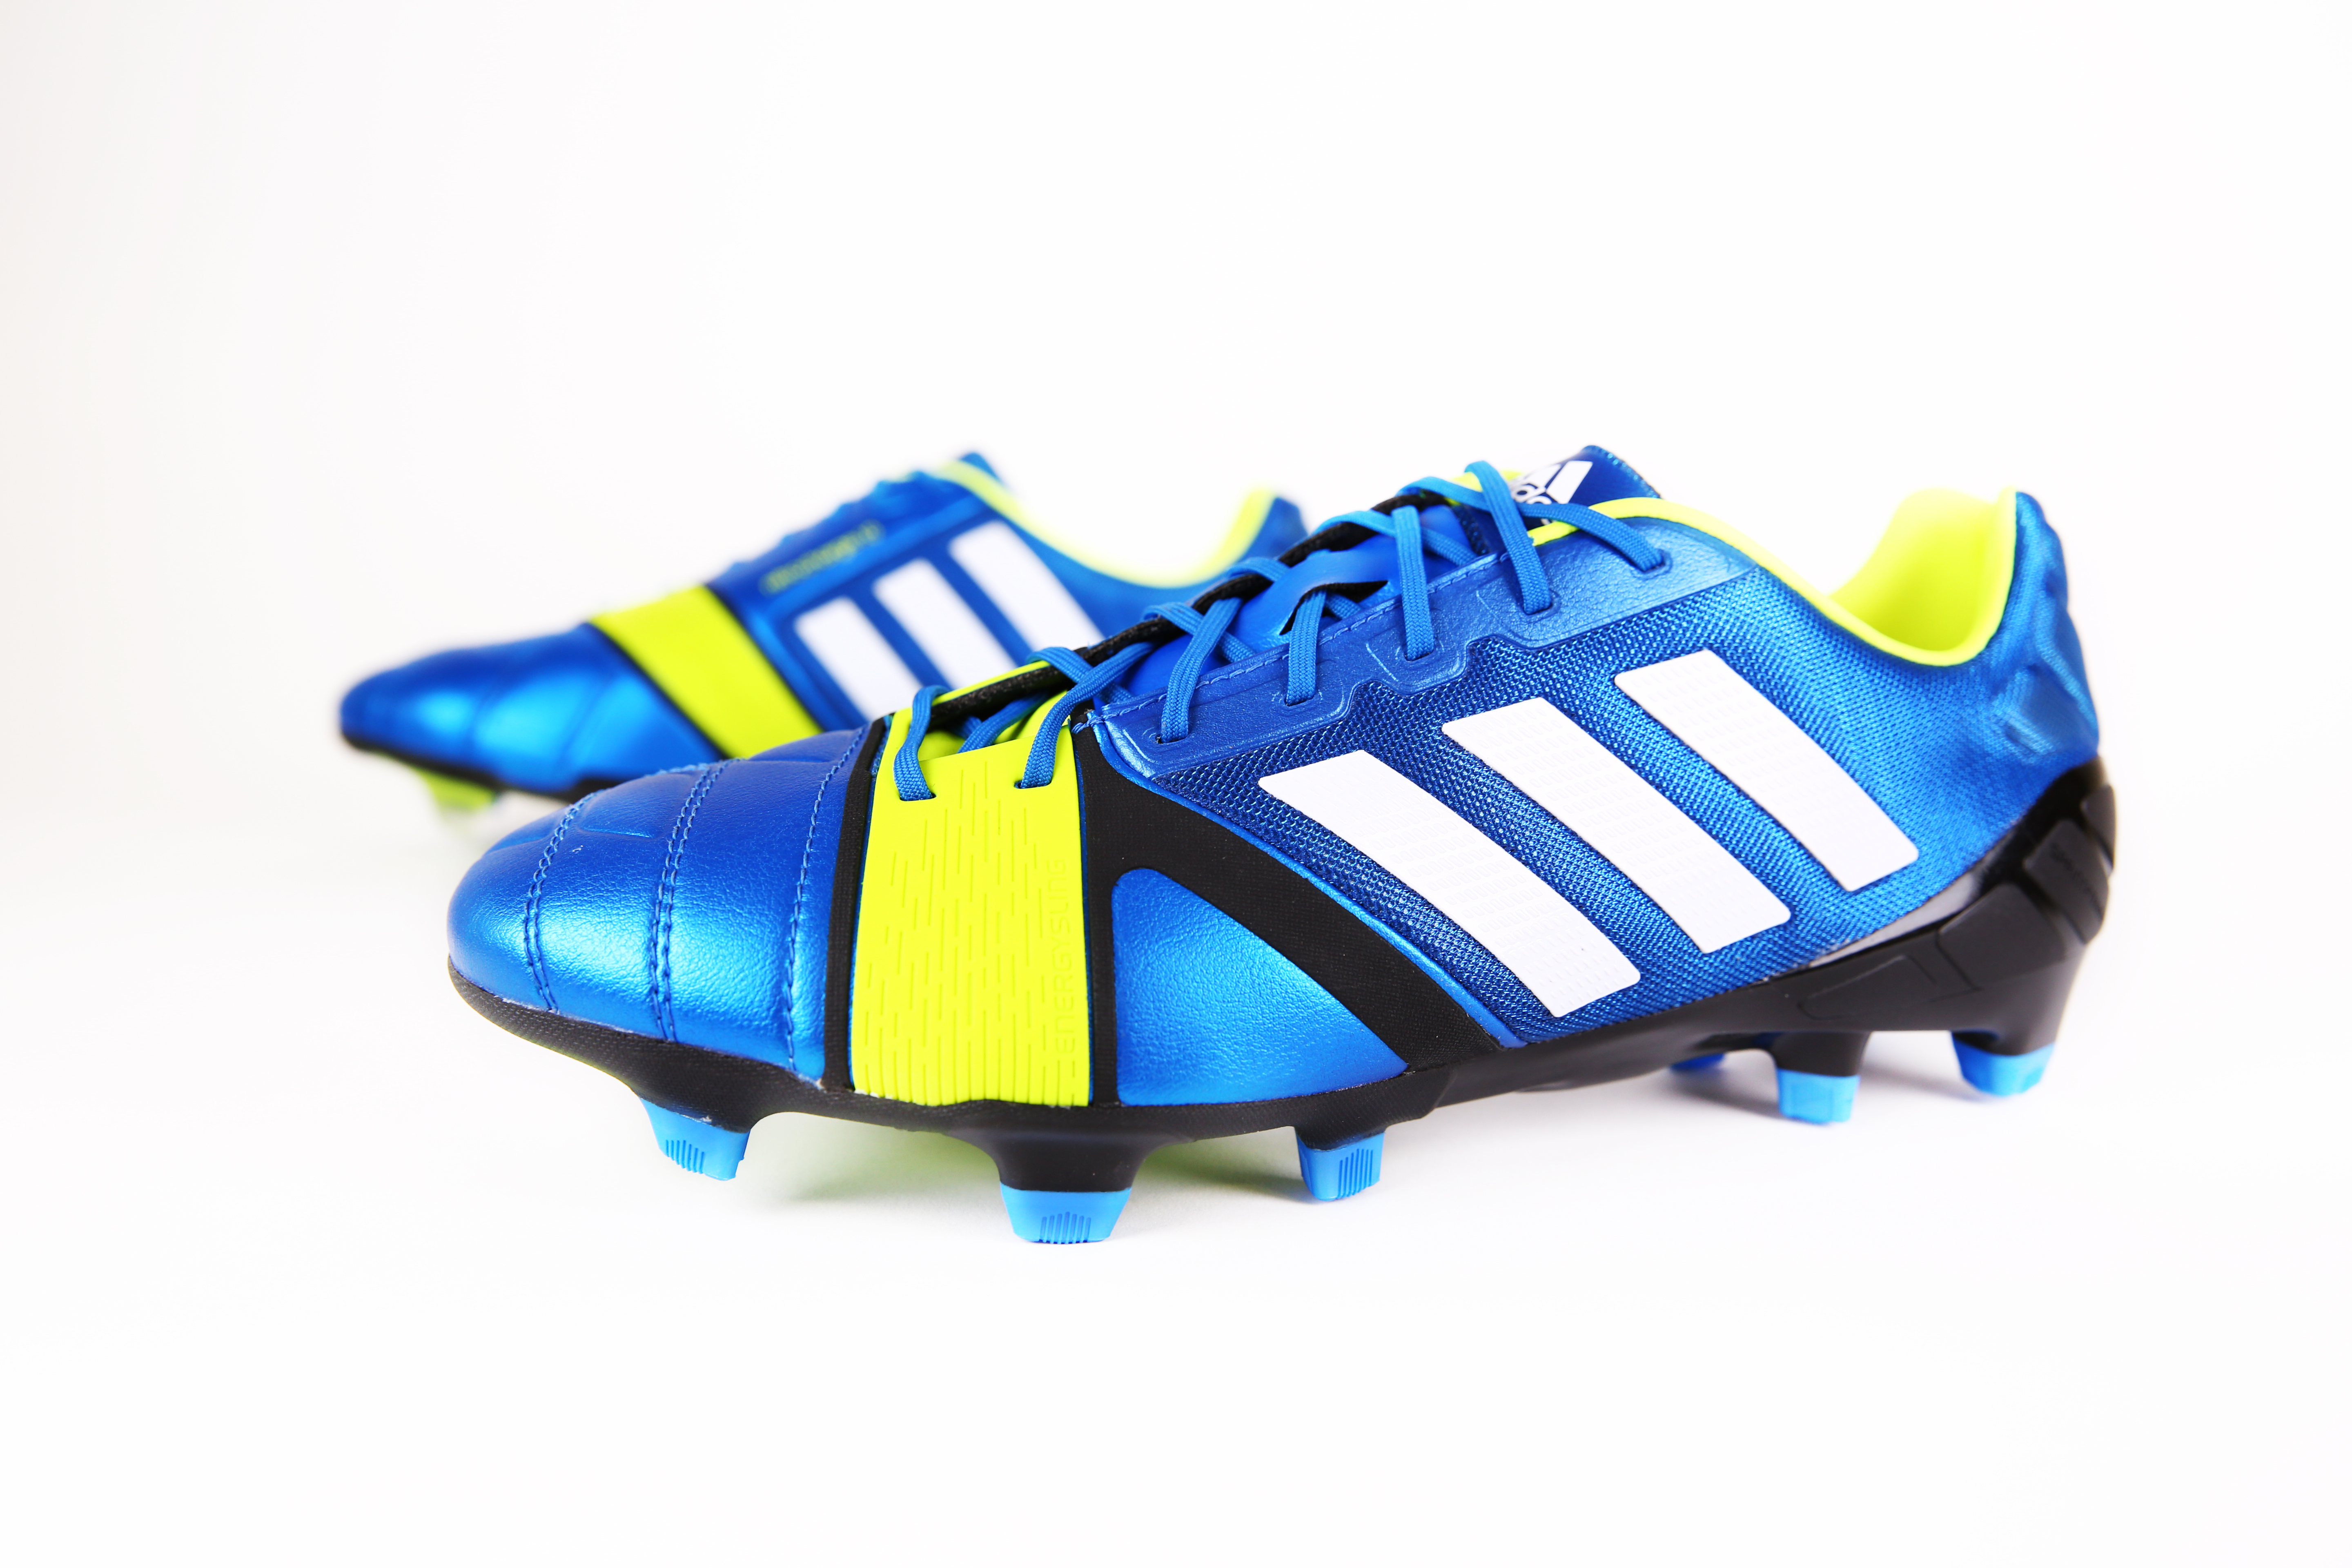 Nitrocharge_Boot_Photography_onWhite_07_001